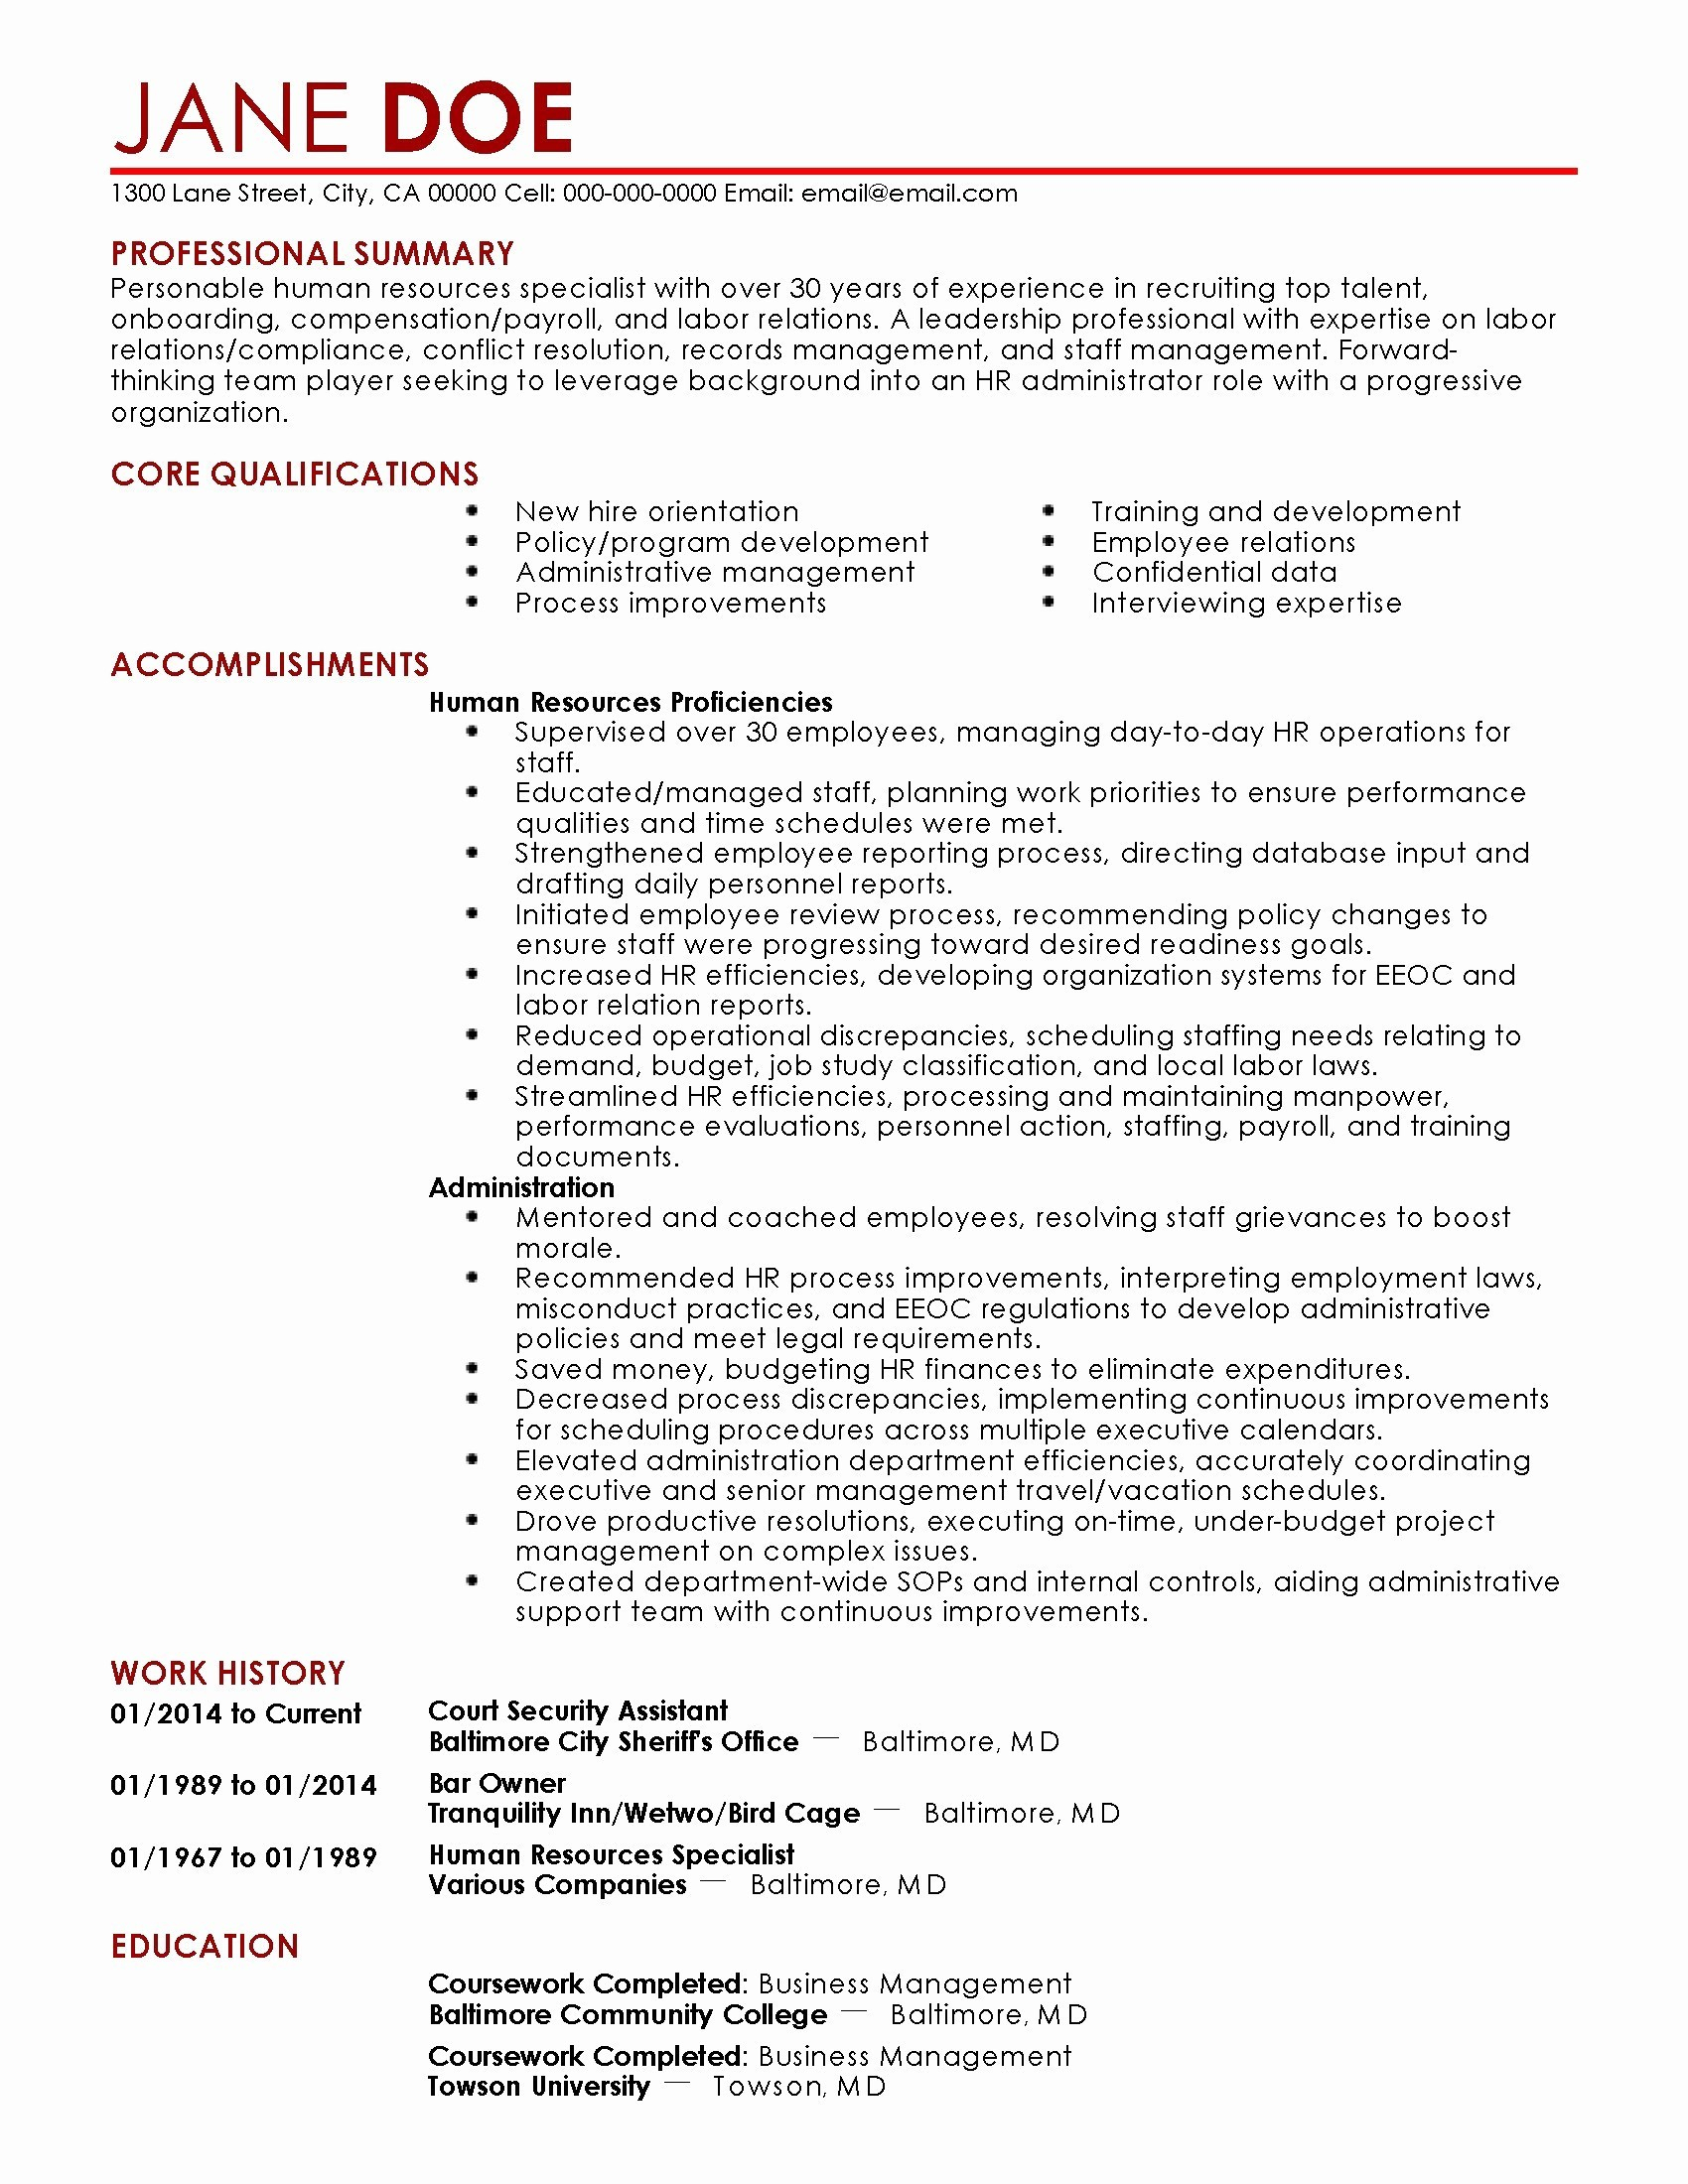 Physician assistant Resume Template - 19 Unique Medical assistant Resume Template